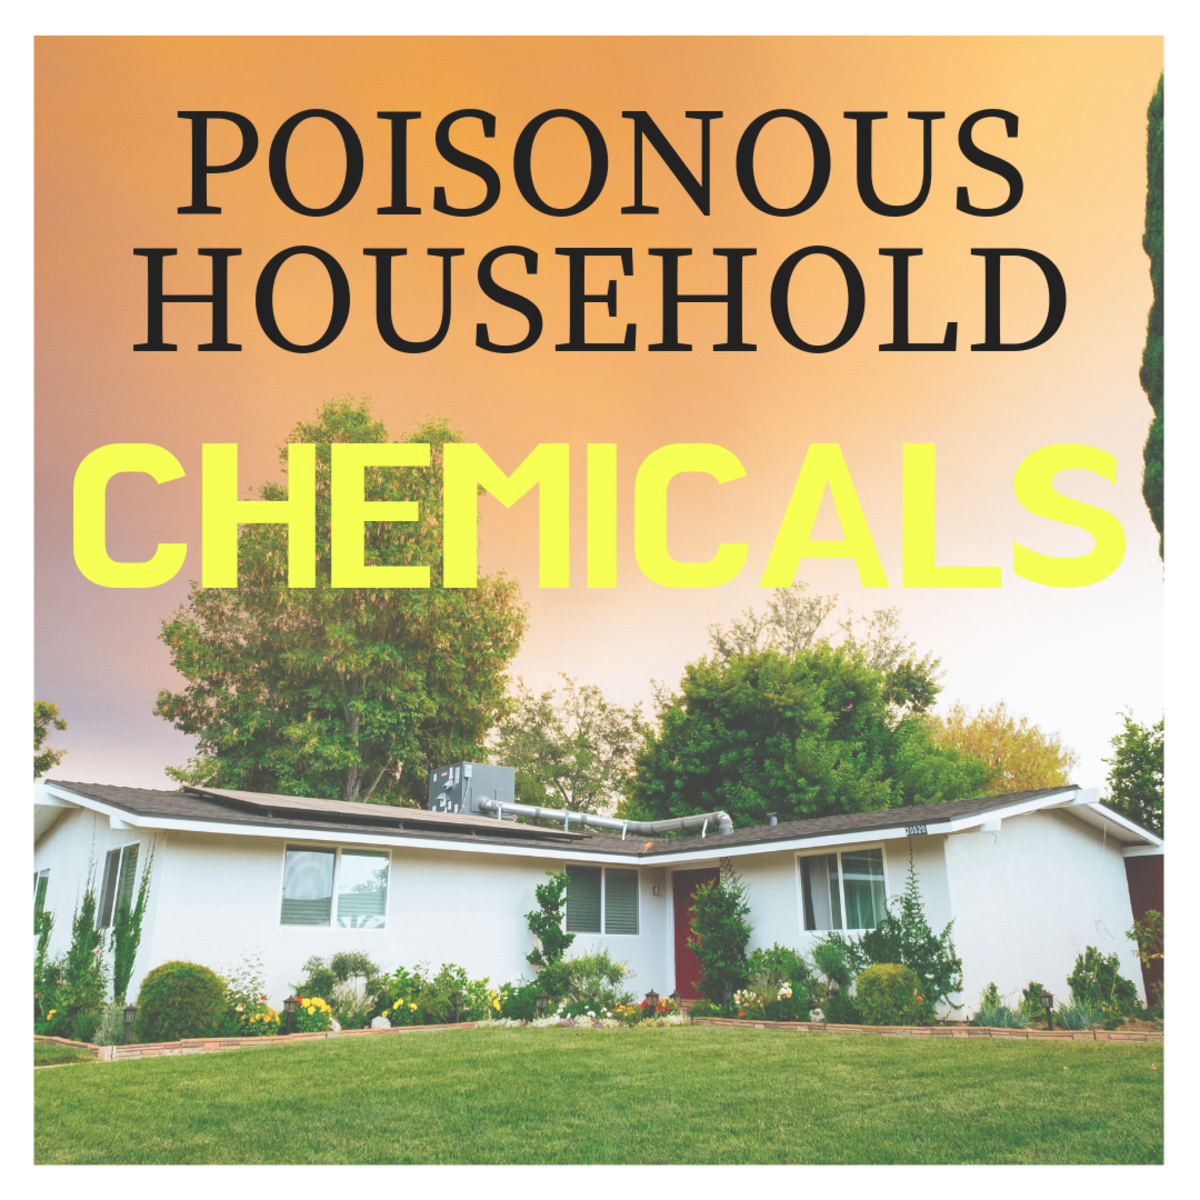 Learn how to ID poisonous substances in your home.